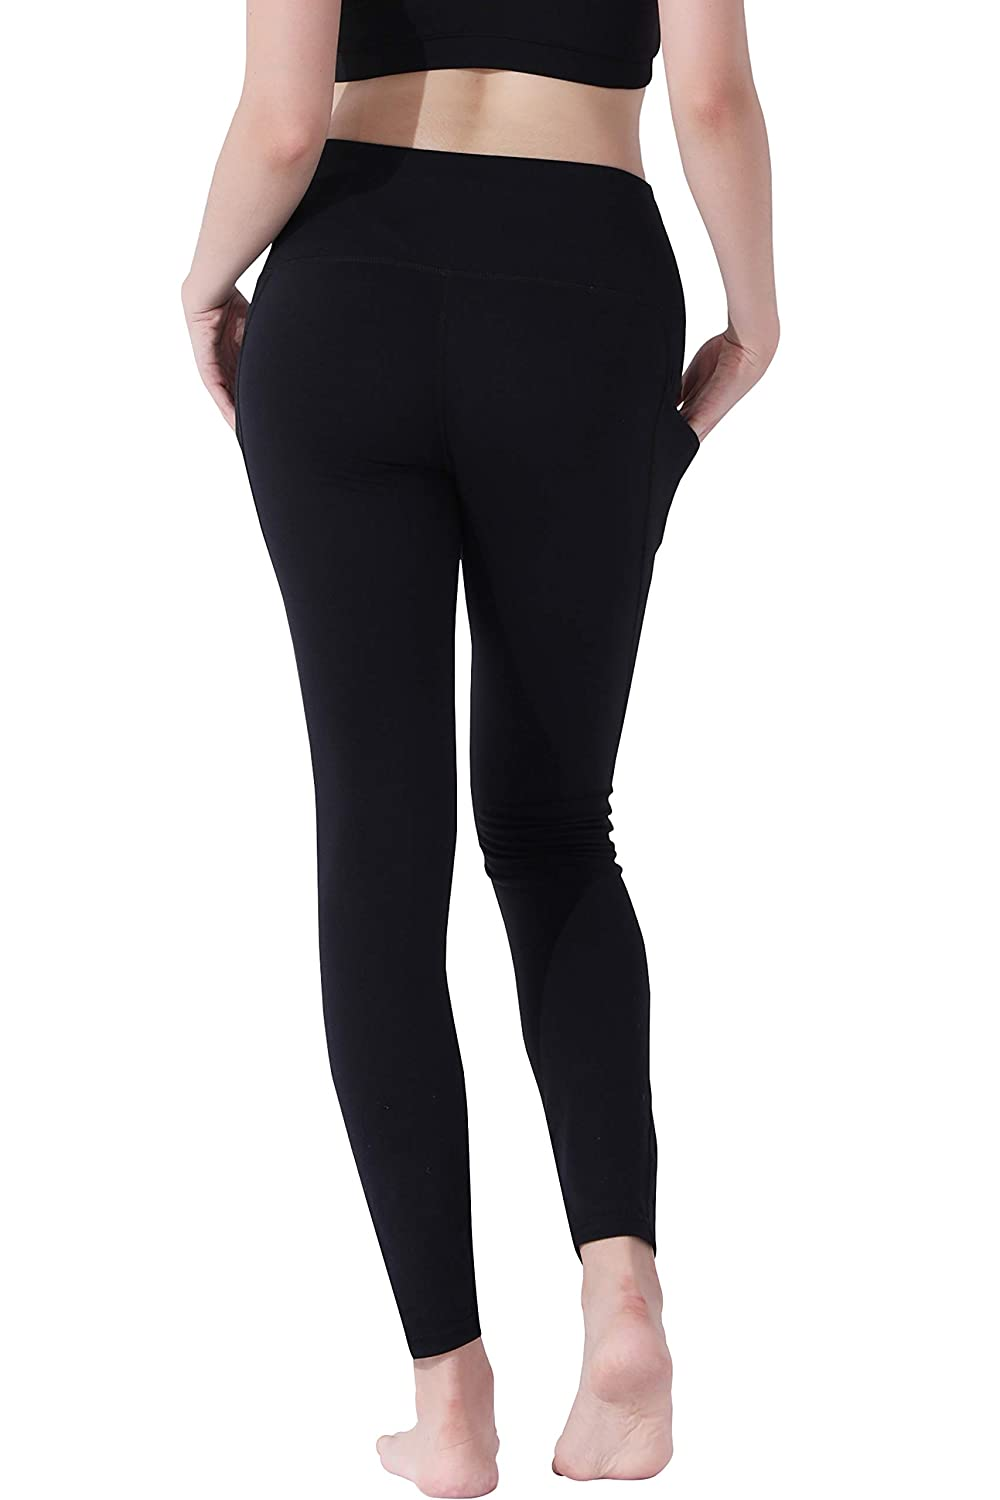 Orolay High Waist Yoga Pants with Pockets for Women Ultra Soft Leggings Workout Pants